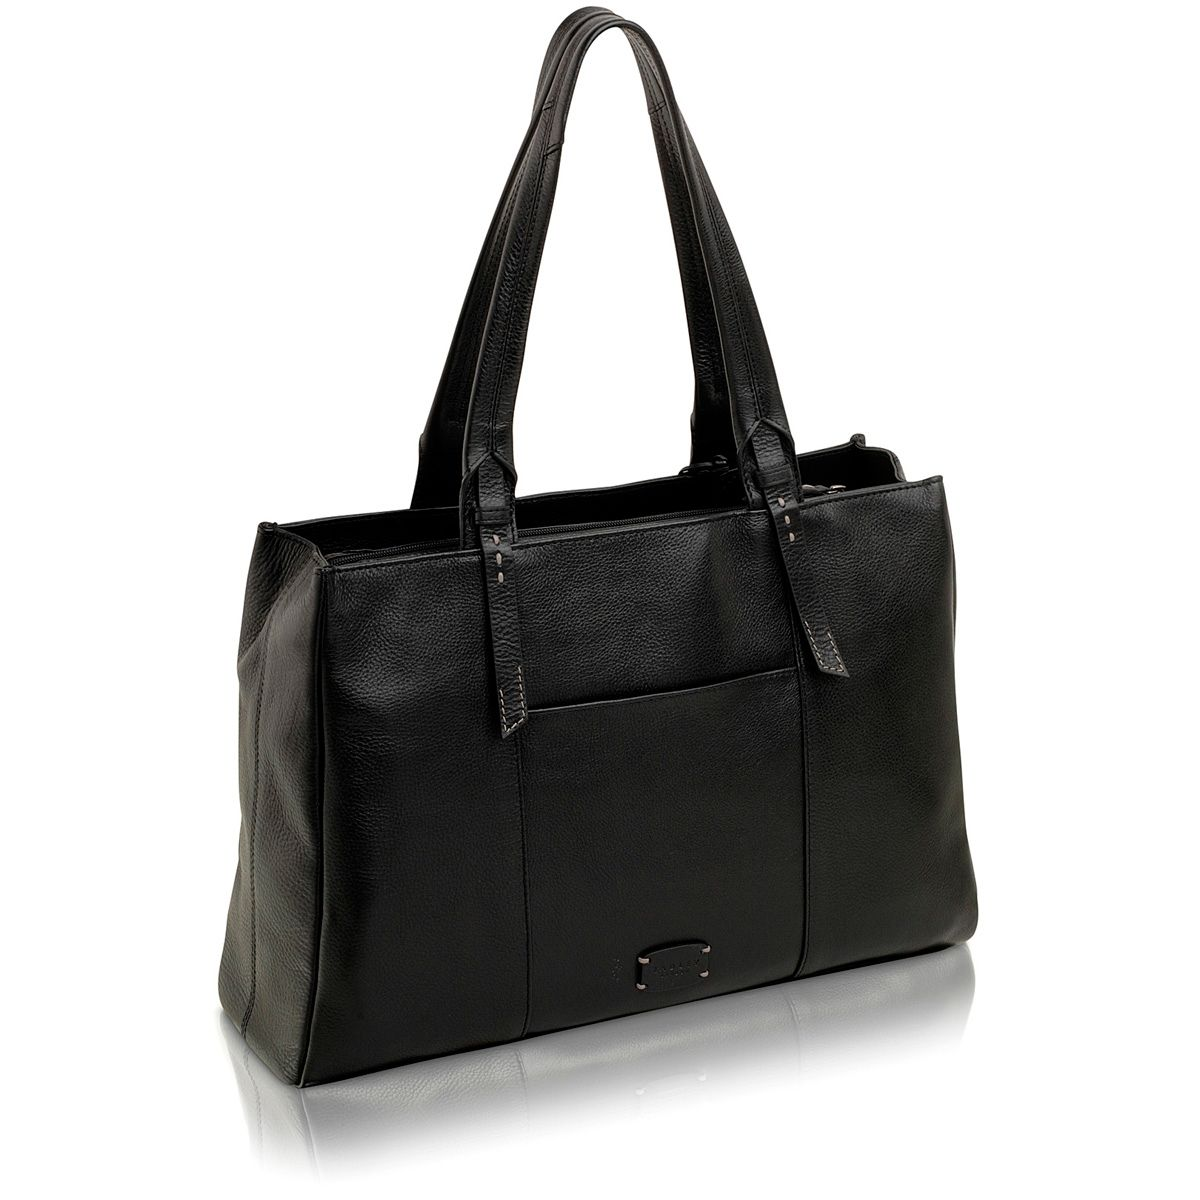 Barnesly large black leather tote bag